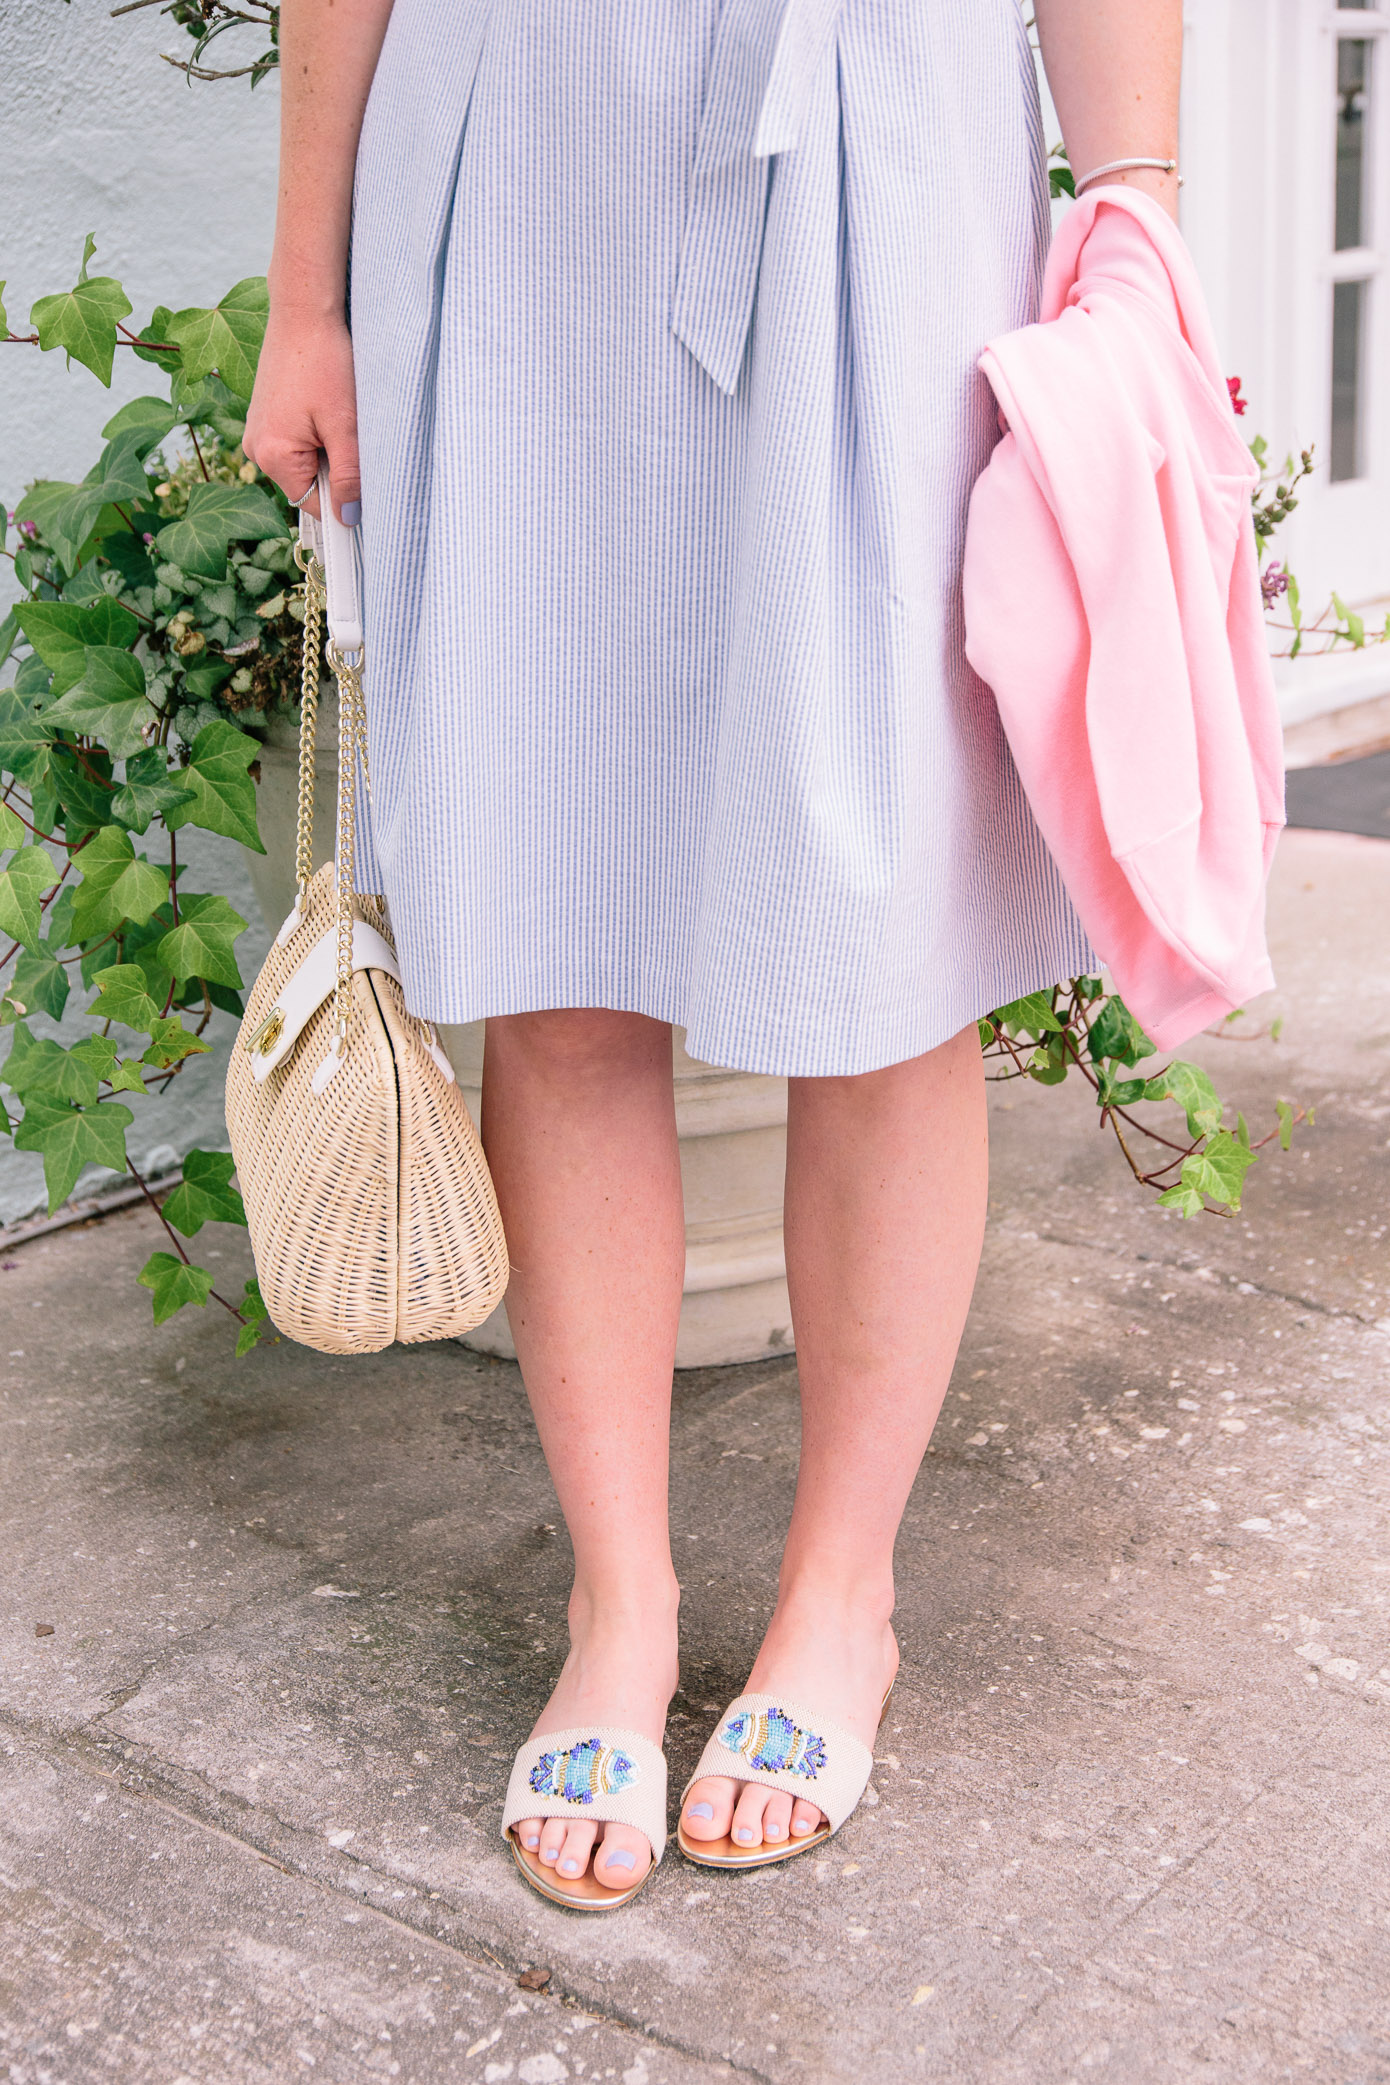 Seersucker Fit and Flare Dress, Millennial Pink Sweater, Beaded Fish Sandals | Talbots Friends & Family Event | Louella Reese Life & Style Blog